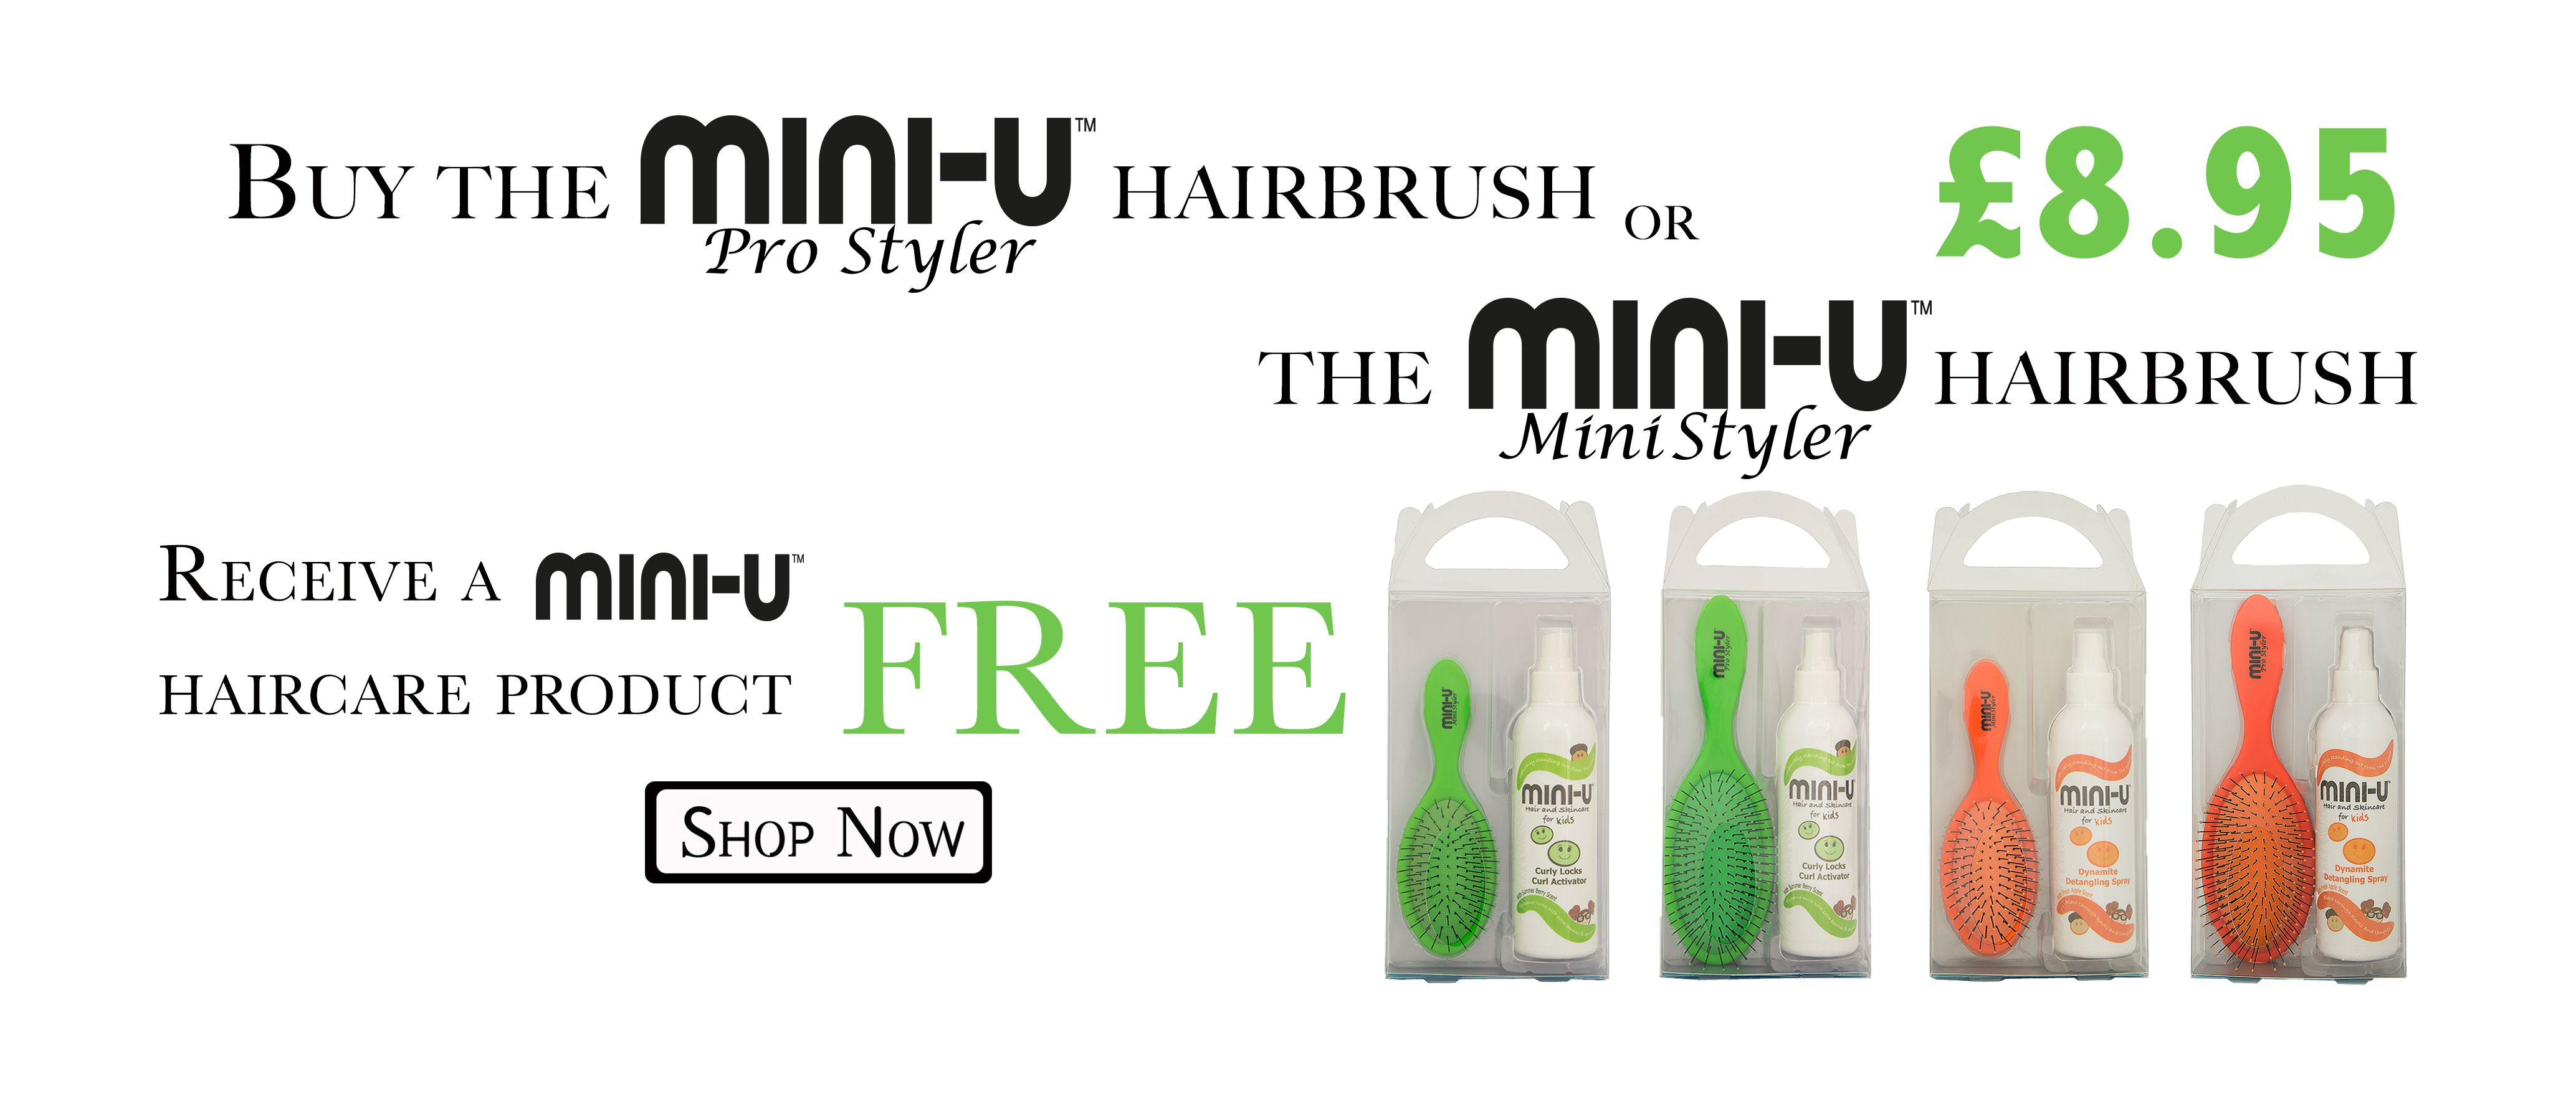 free-product-with-miniu-hairbrush-1